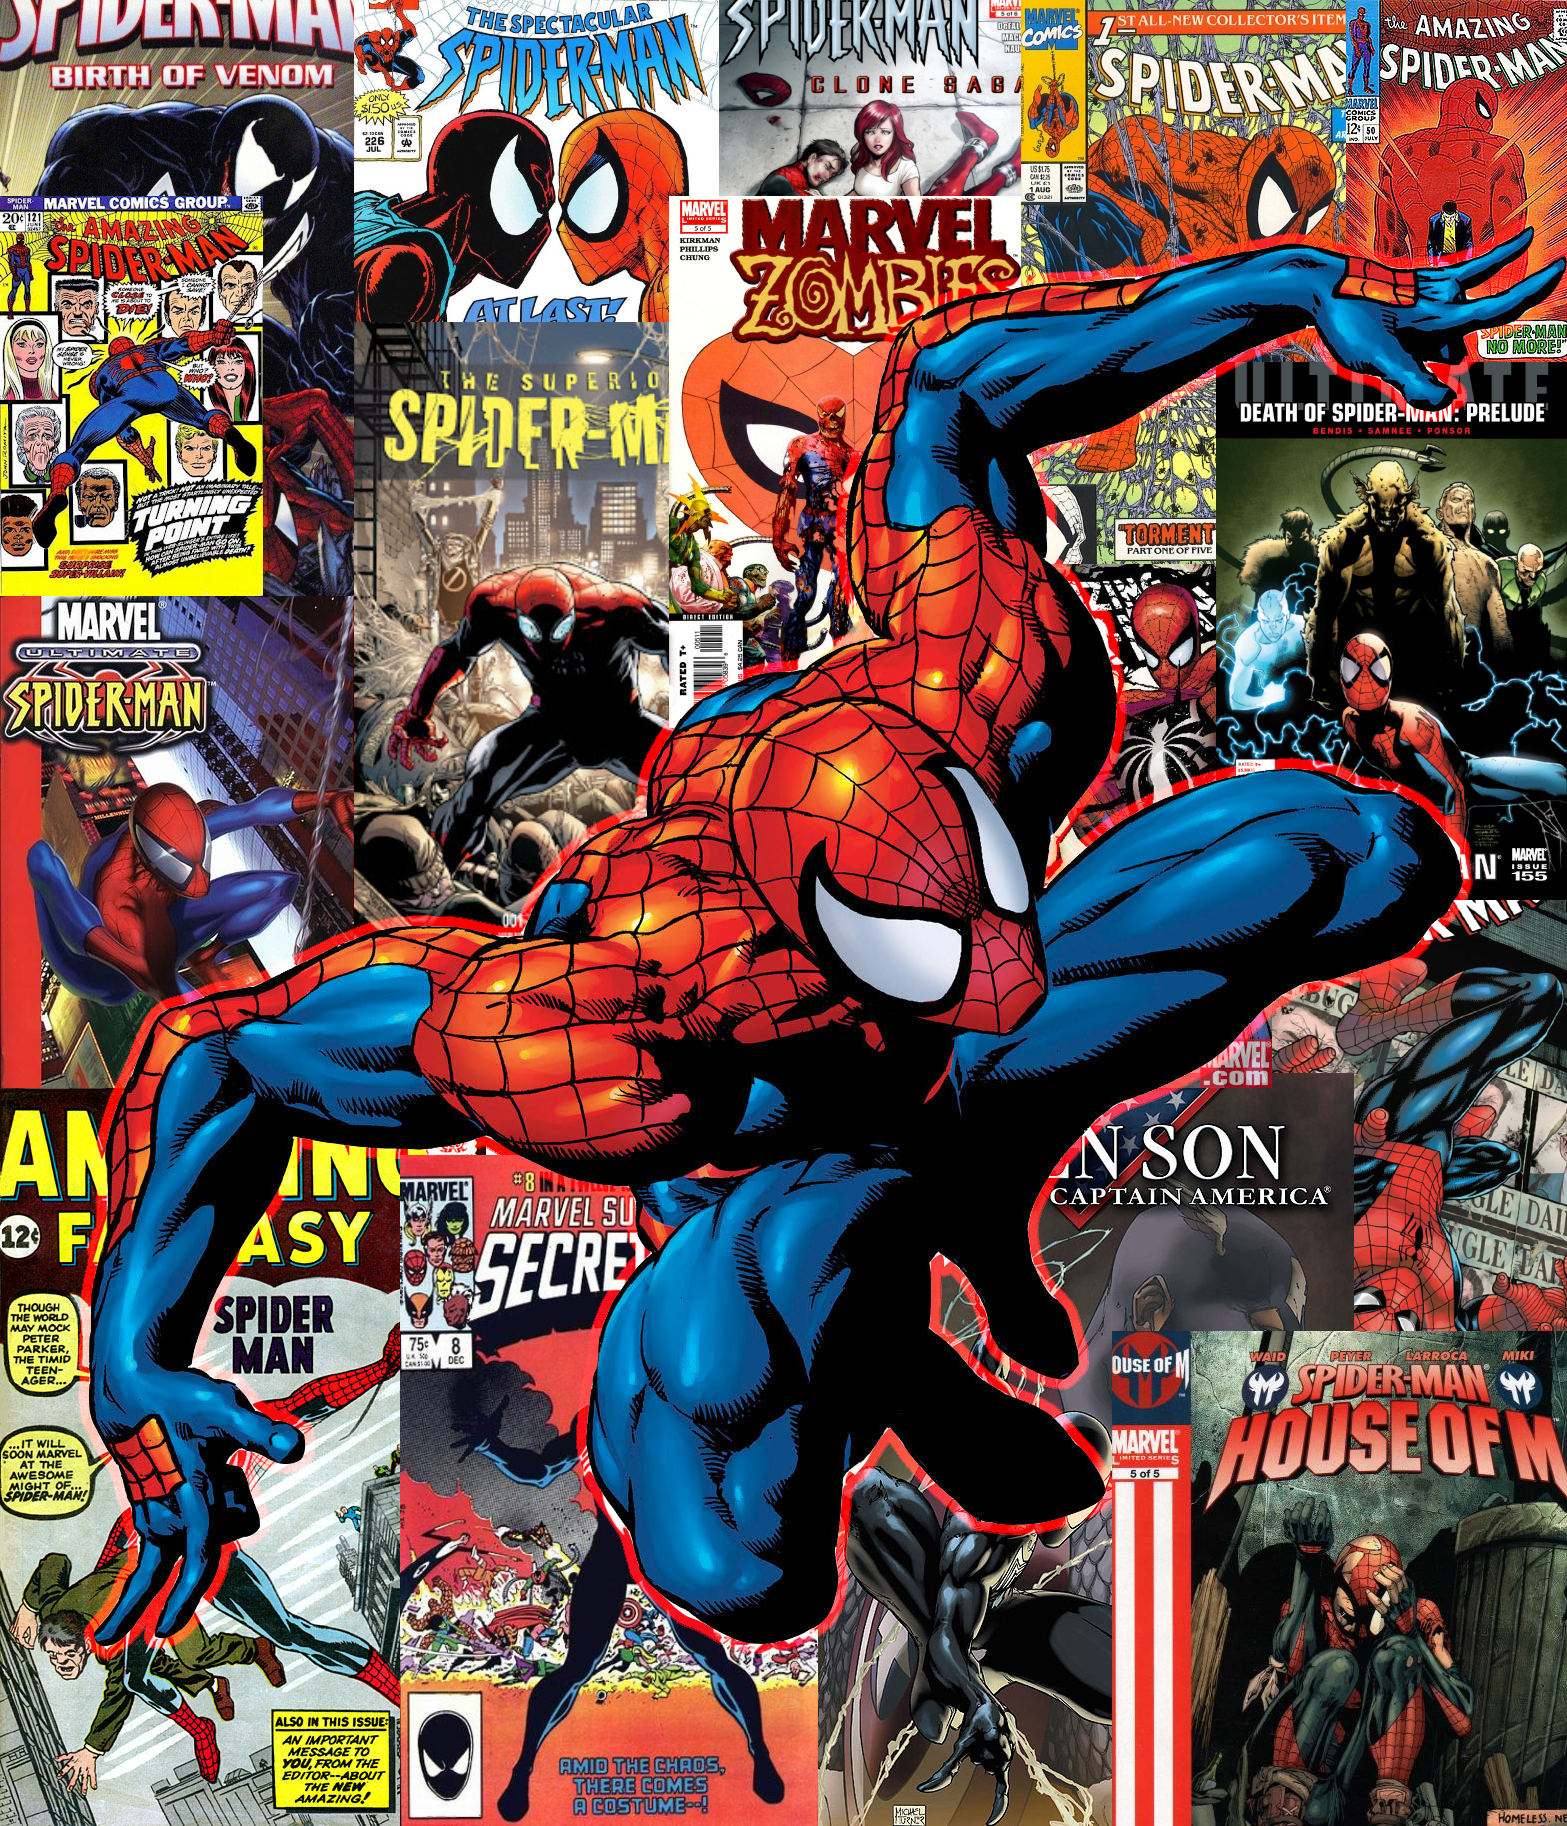 Spiderman comic cover